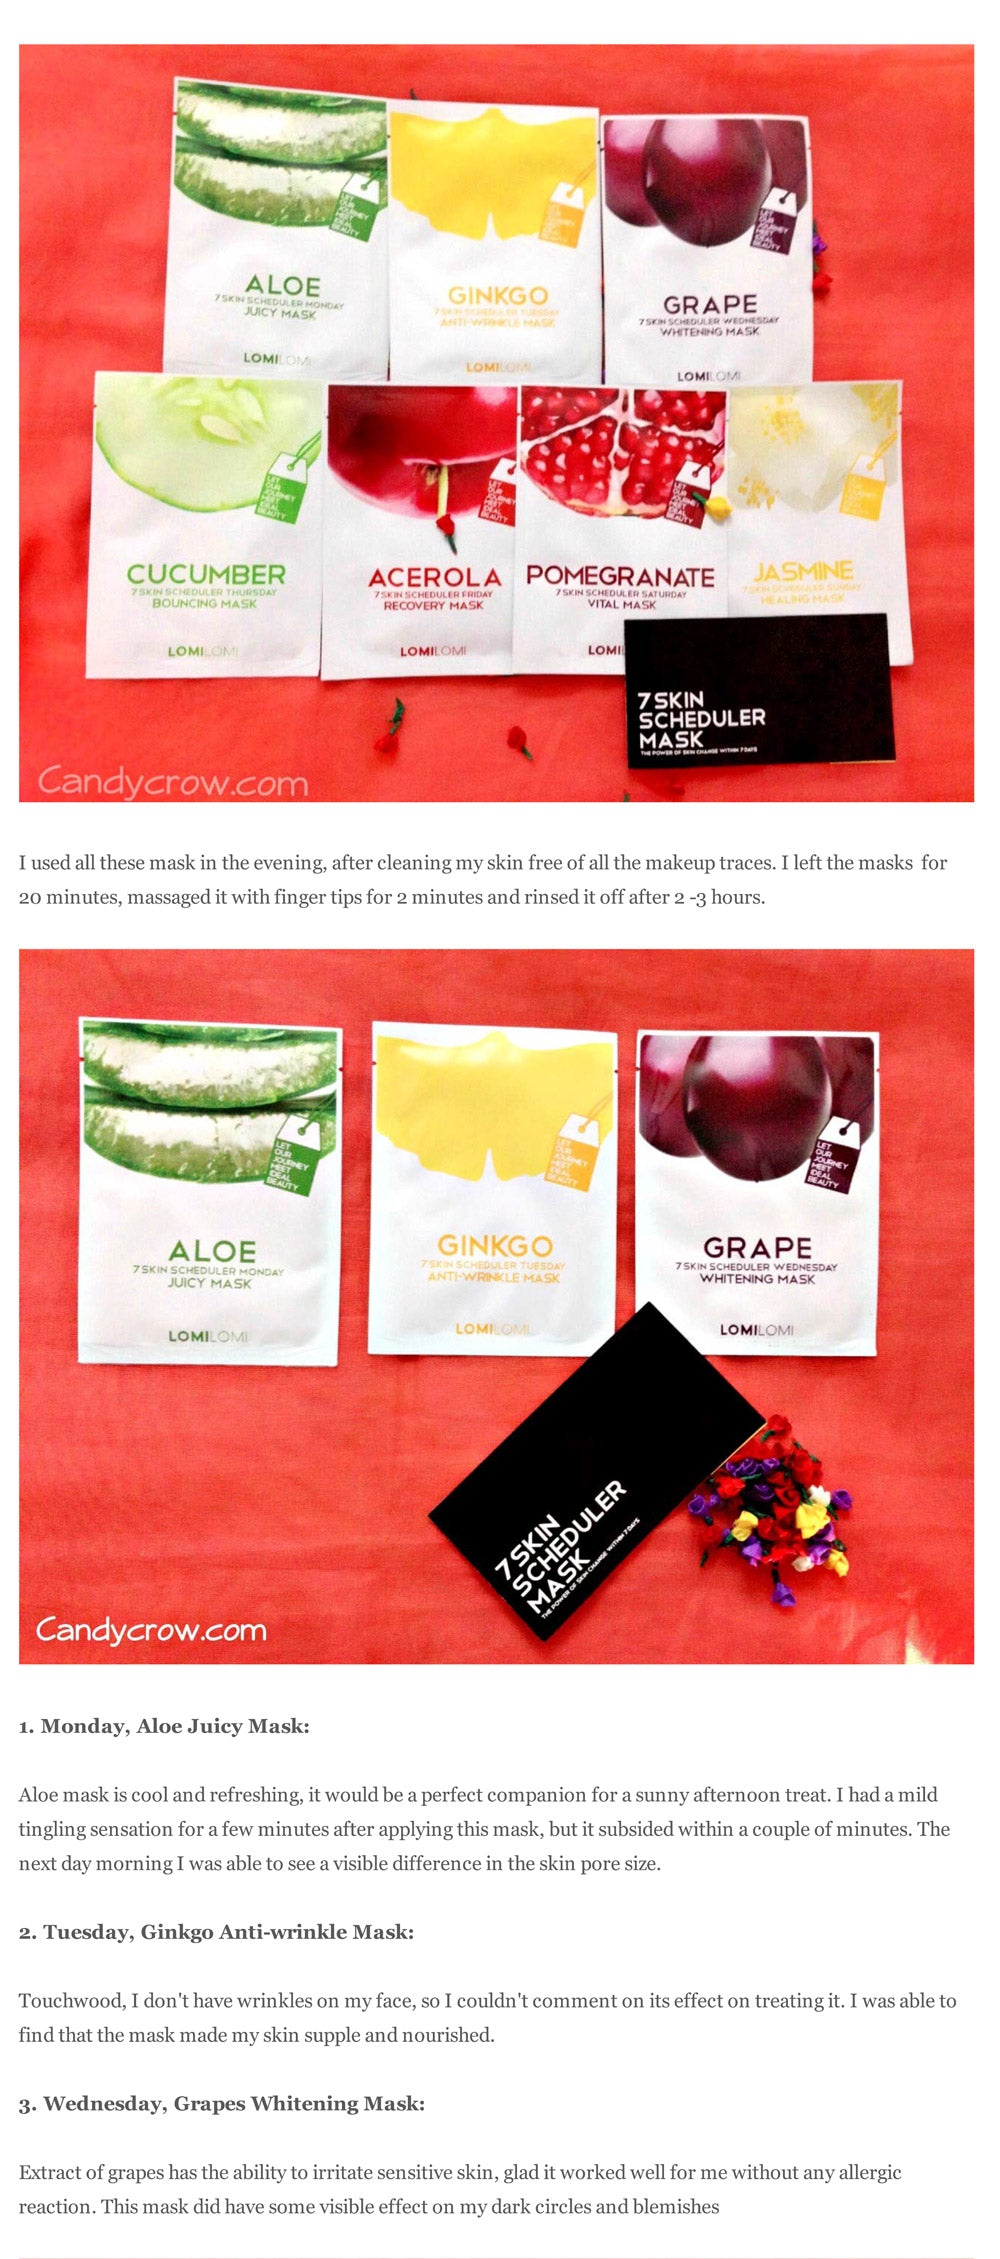 (Blogger : candycrow.com) Lomi Lomi 7 Skin Scheduler Mask Review